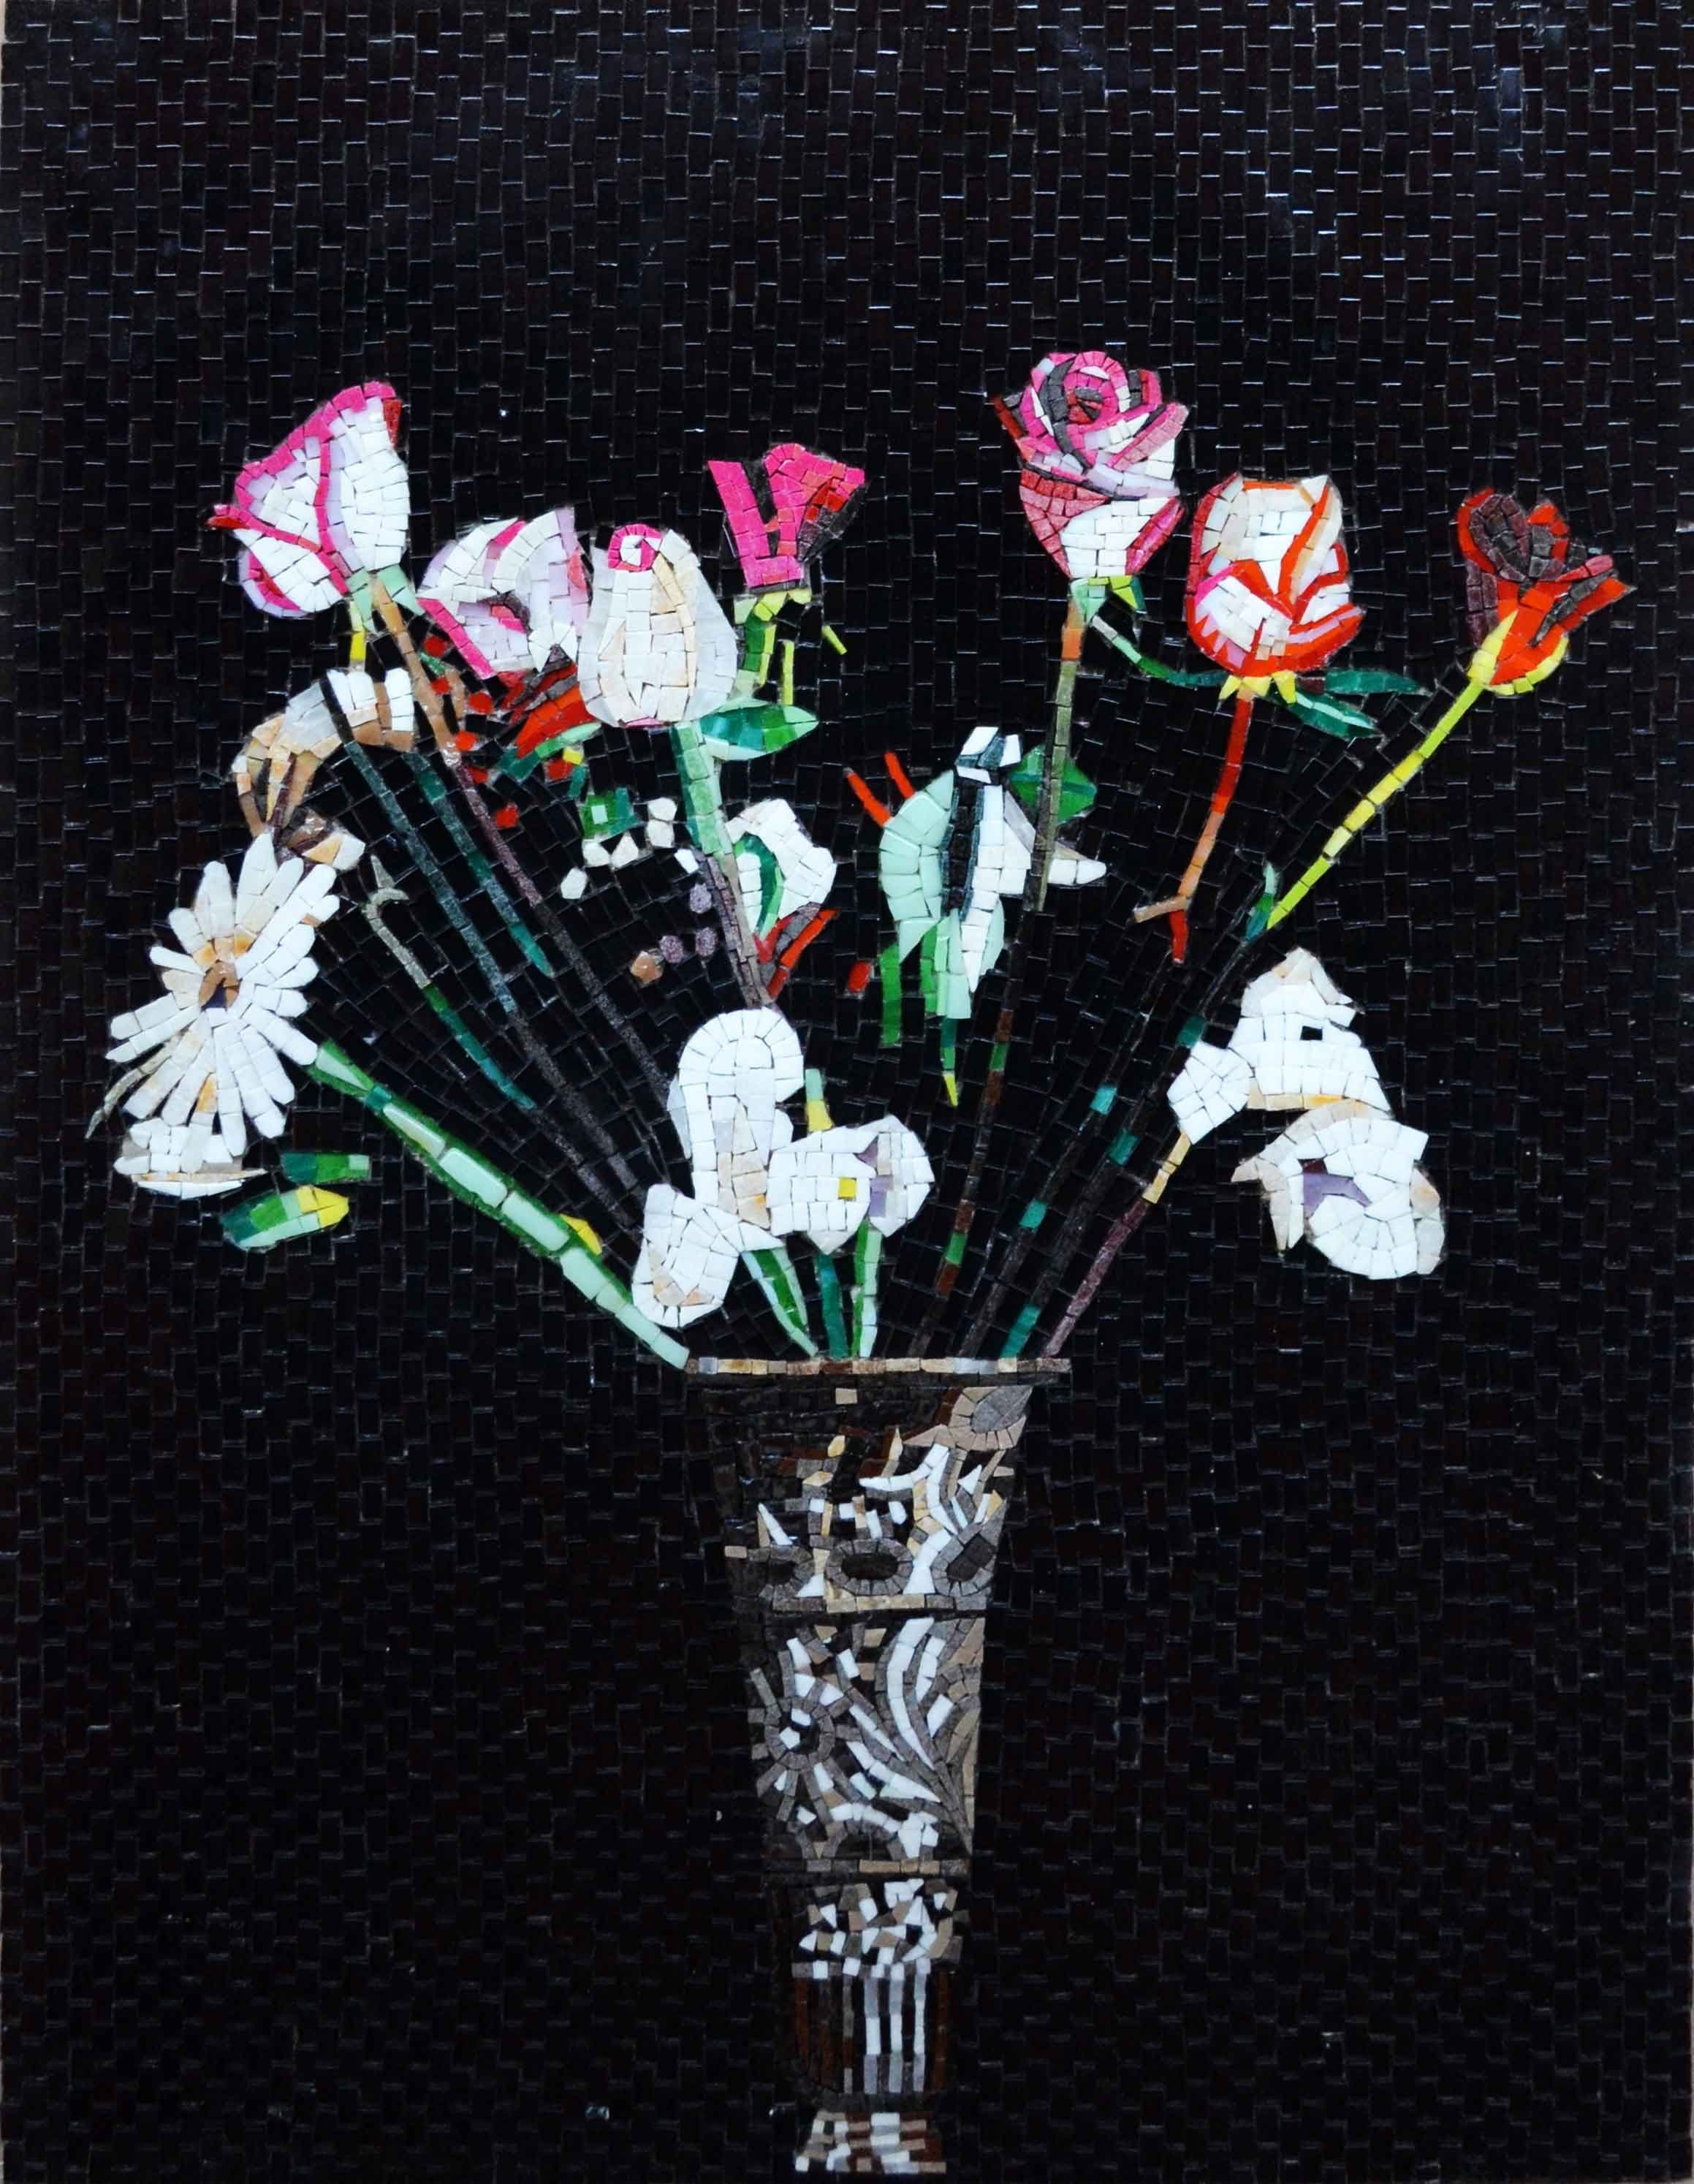 Mosaic Art Flowers In A Vase Pic